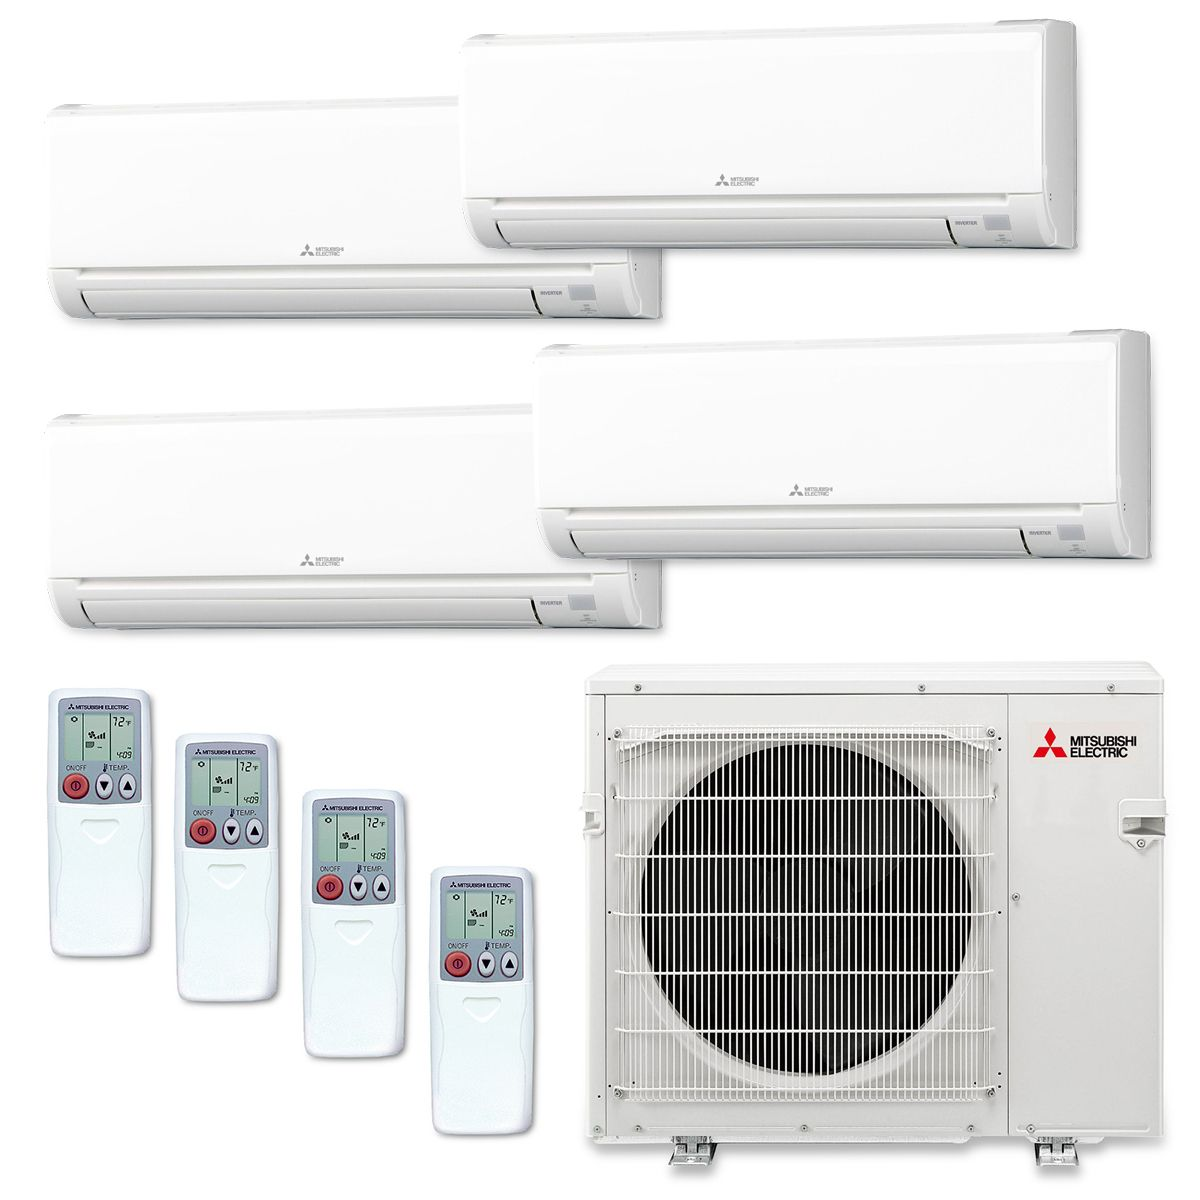 zuba ductless central slim mr mitsubishi toronto city multi products split systems system